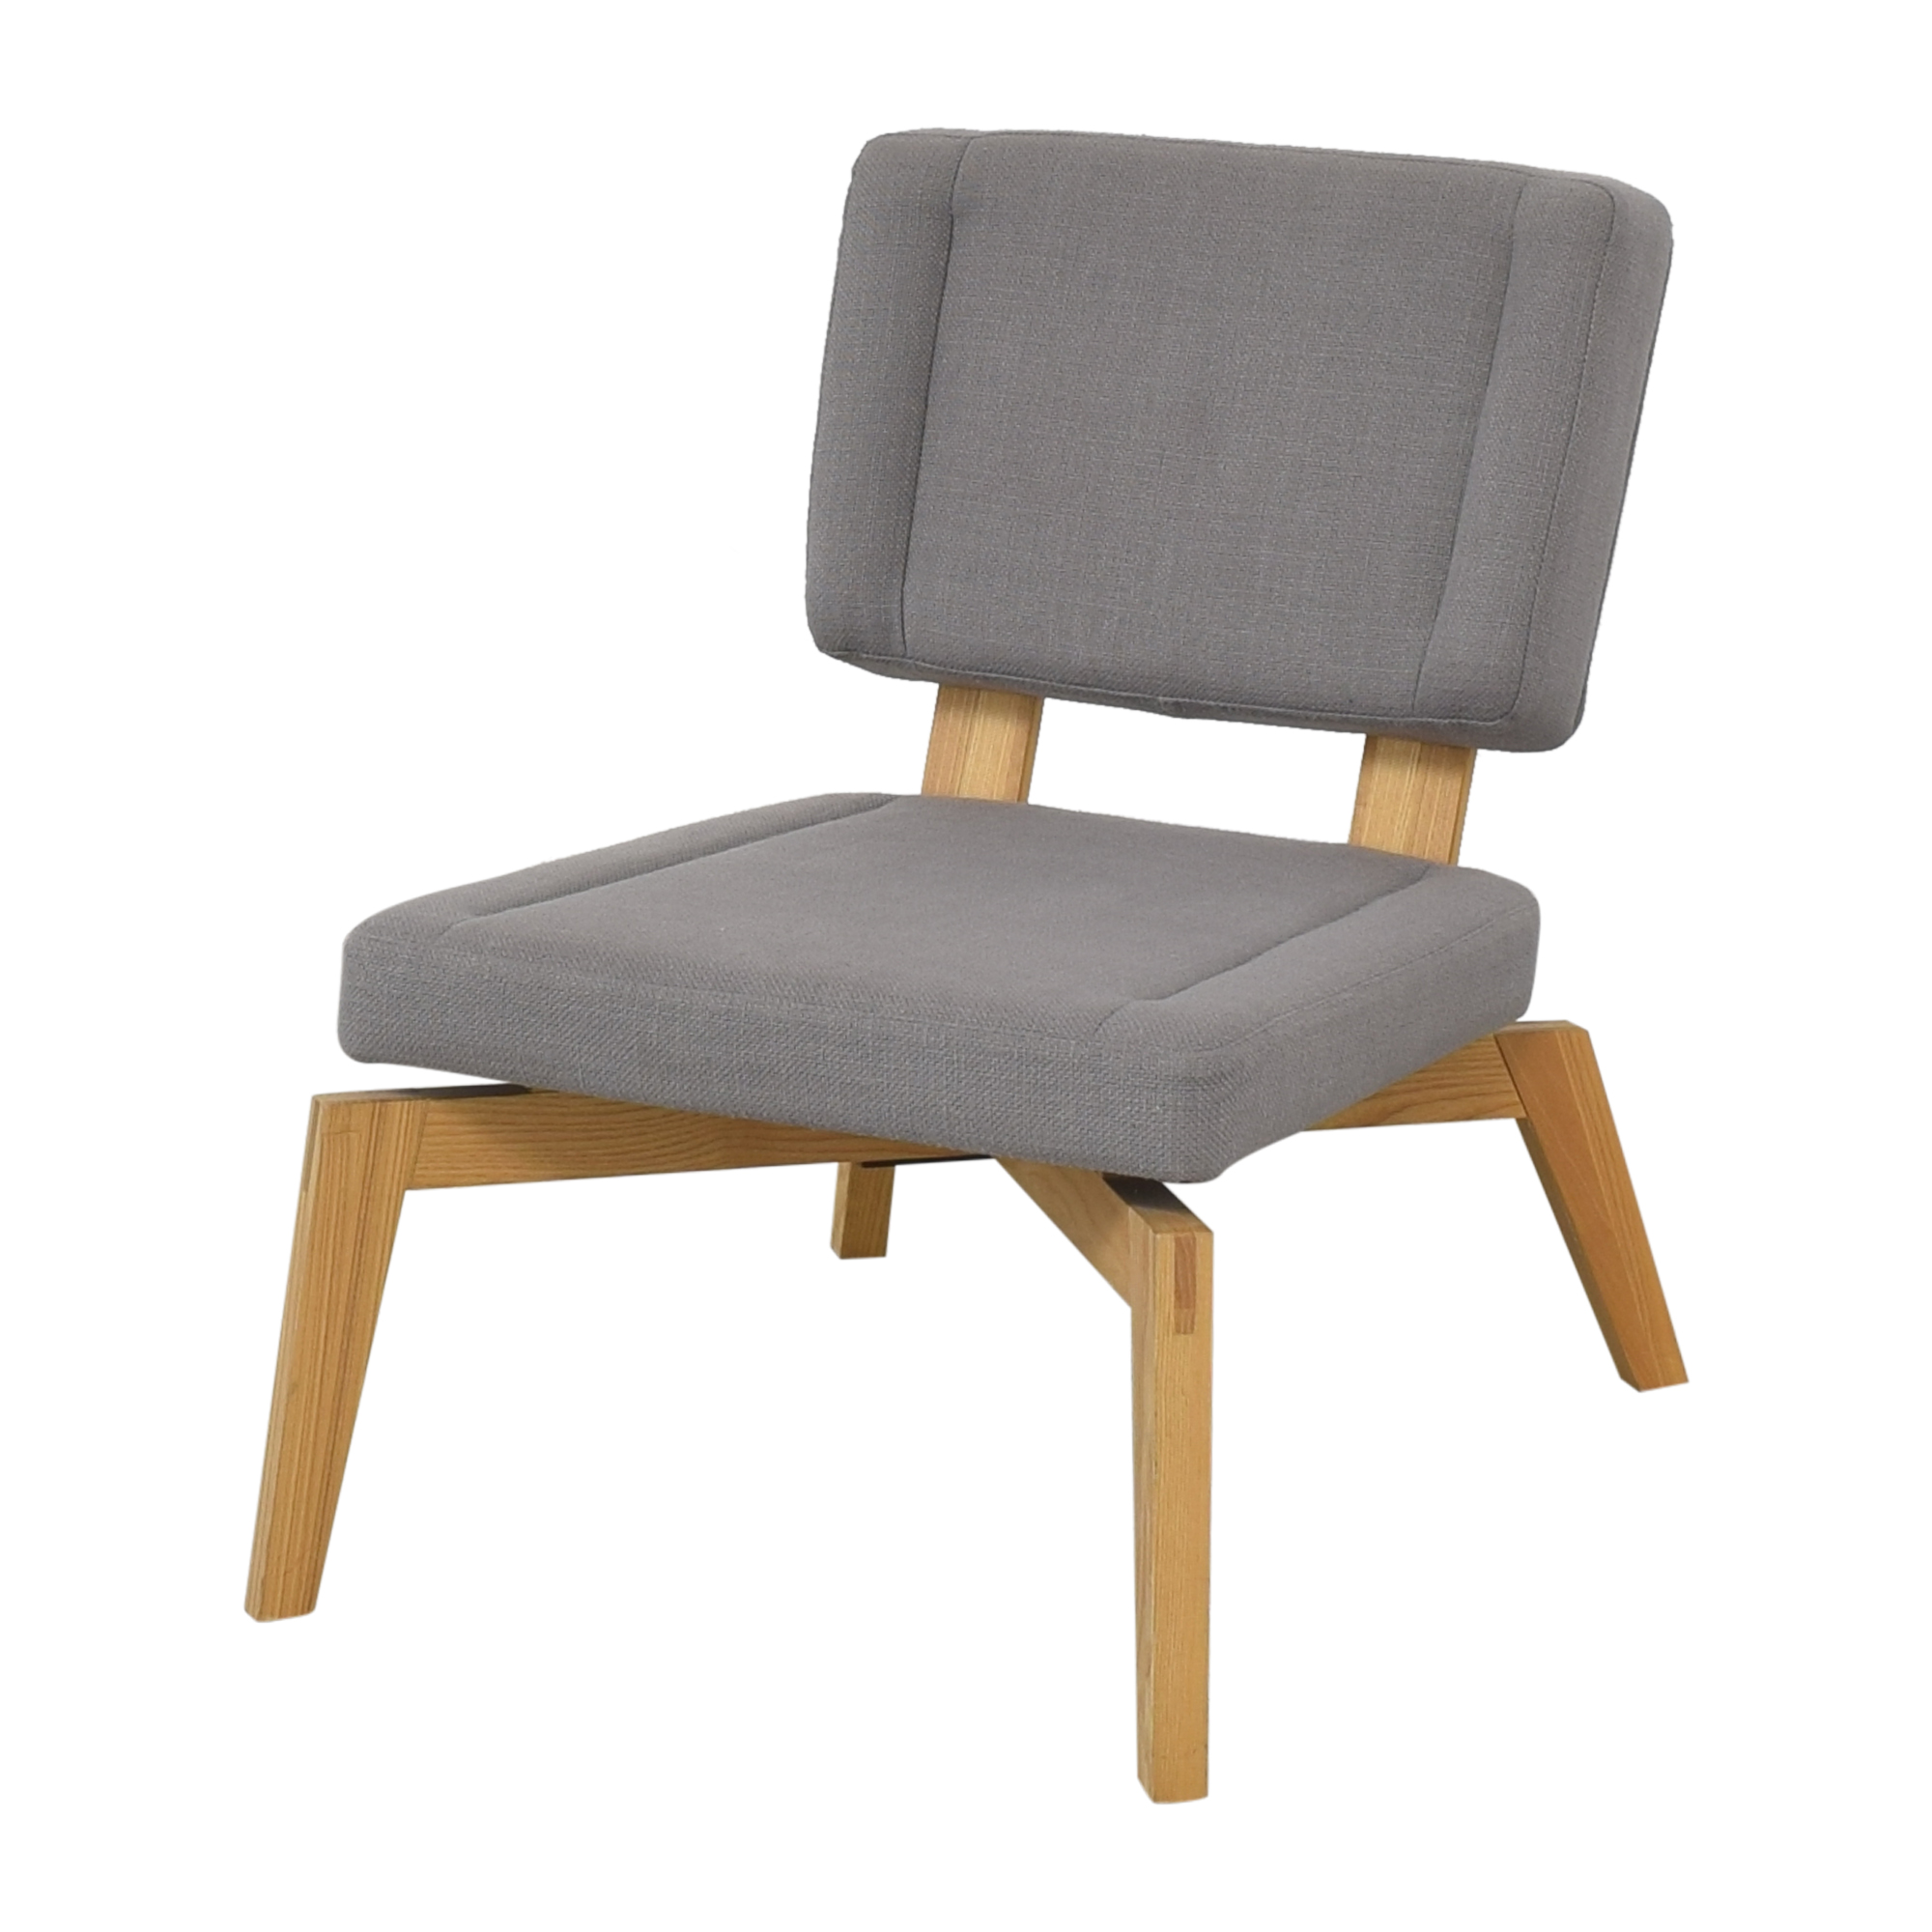 CB2 CB2 Lounge Chair with Ottoman Chairs